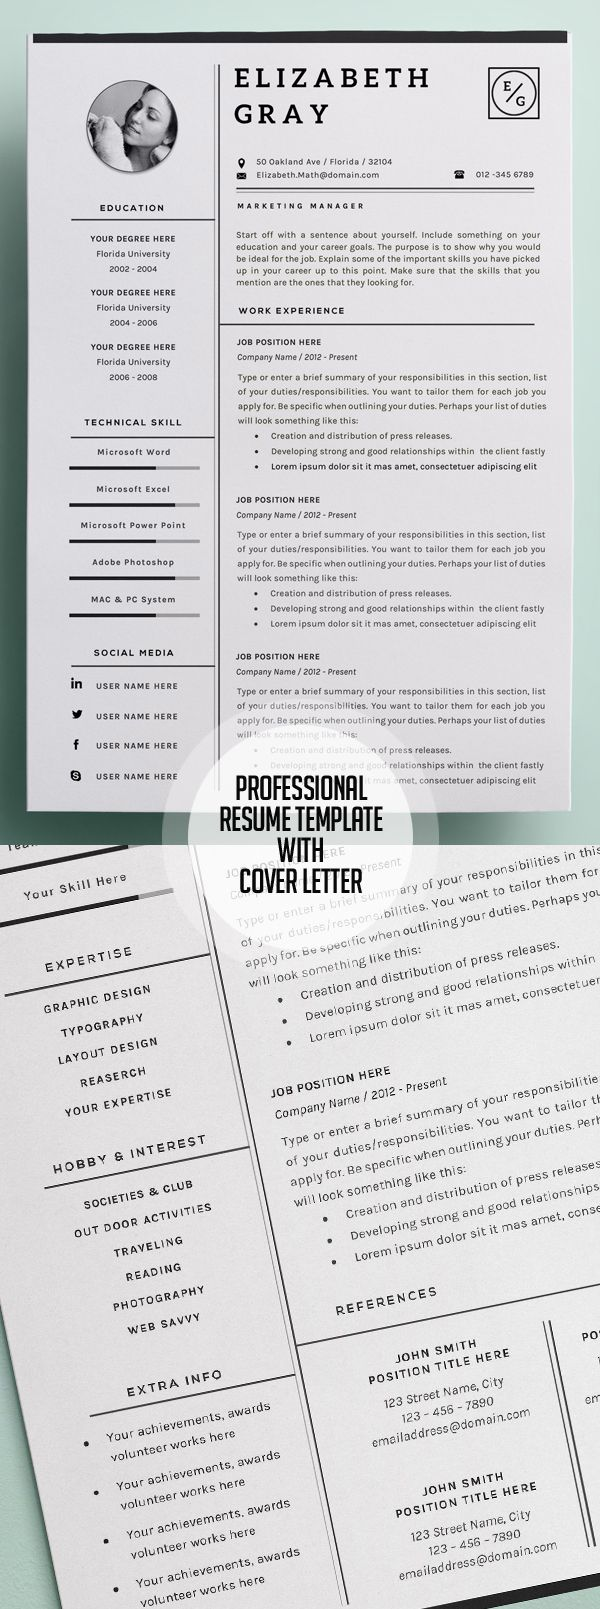 Opposenewapstandardsus  Inspiring  Resume Ideas On Pinterest  Resume Resume Templates And  With Marvelous Professional And Modern Resume Template With Page Cover Cvtemplate With Enchanting Resume Clip Art Also Skills To Have On Resume In Addition San Diego Resume Service And Resume Entry Level As Well As Store Manager Resume Examples Additionally Words To Put On Resume From Pinterestcom With Opposenewapstandardsus  Marvelous  Resume Ideas On Pinterest  Resume Resume Templates And  With Enchanting Professional And Modern Resume Template With Page Cover Cvtemplate And Inspiring Resume Clip Art Also Skills To Have On Resume In Addition San Diego Resume Service From Pinterestcom